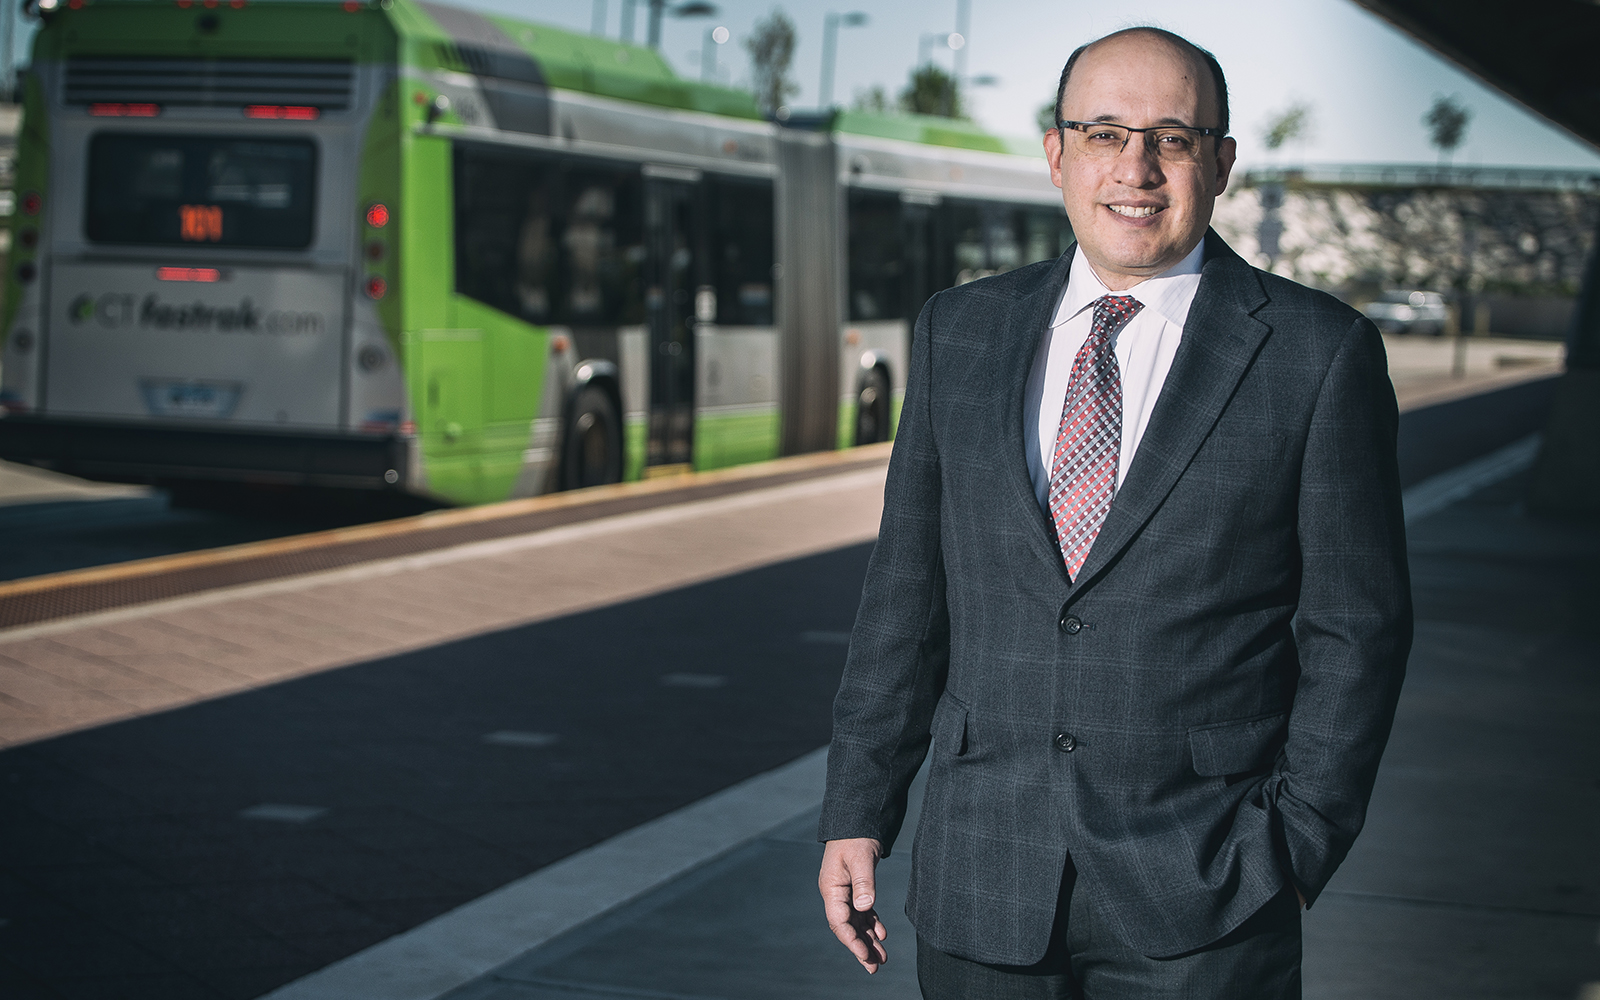 Jeffrey Cohen, who specializes in real estate and finance, has received a $194,000 grant from the state Department of Transportation to start investigating economic changes along the CTfastrak bus route. (Nathan Oldham/UConn School of Business)